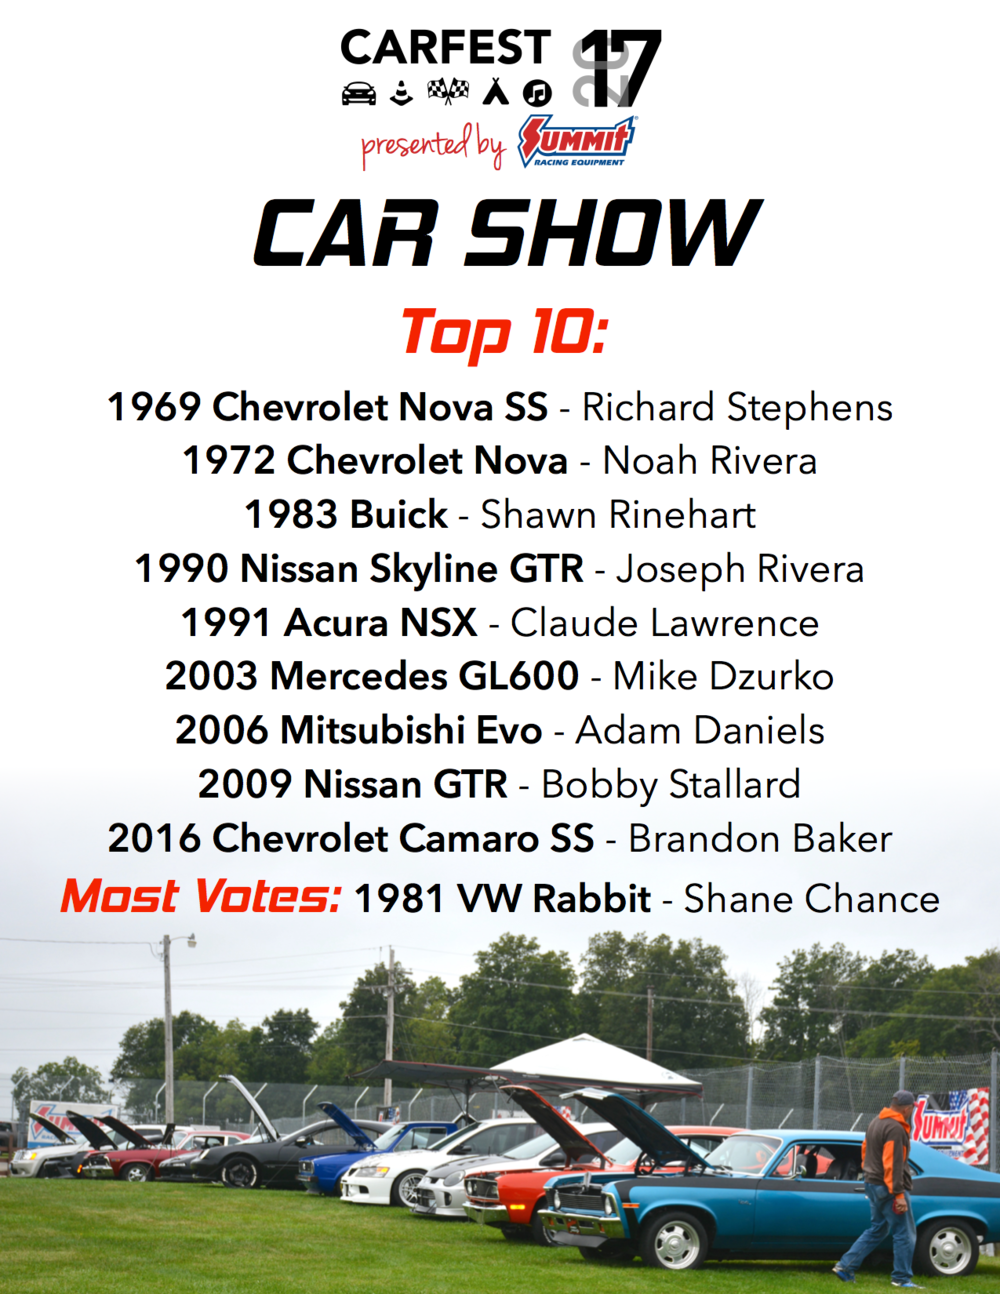 CARFEST 2017 Results - Car Show 2.png